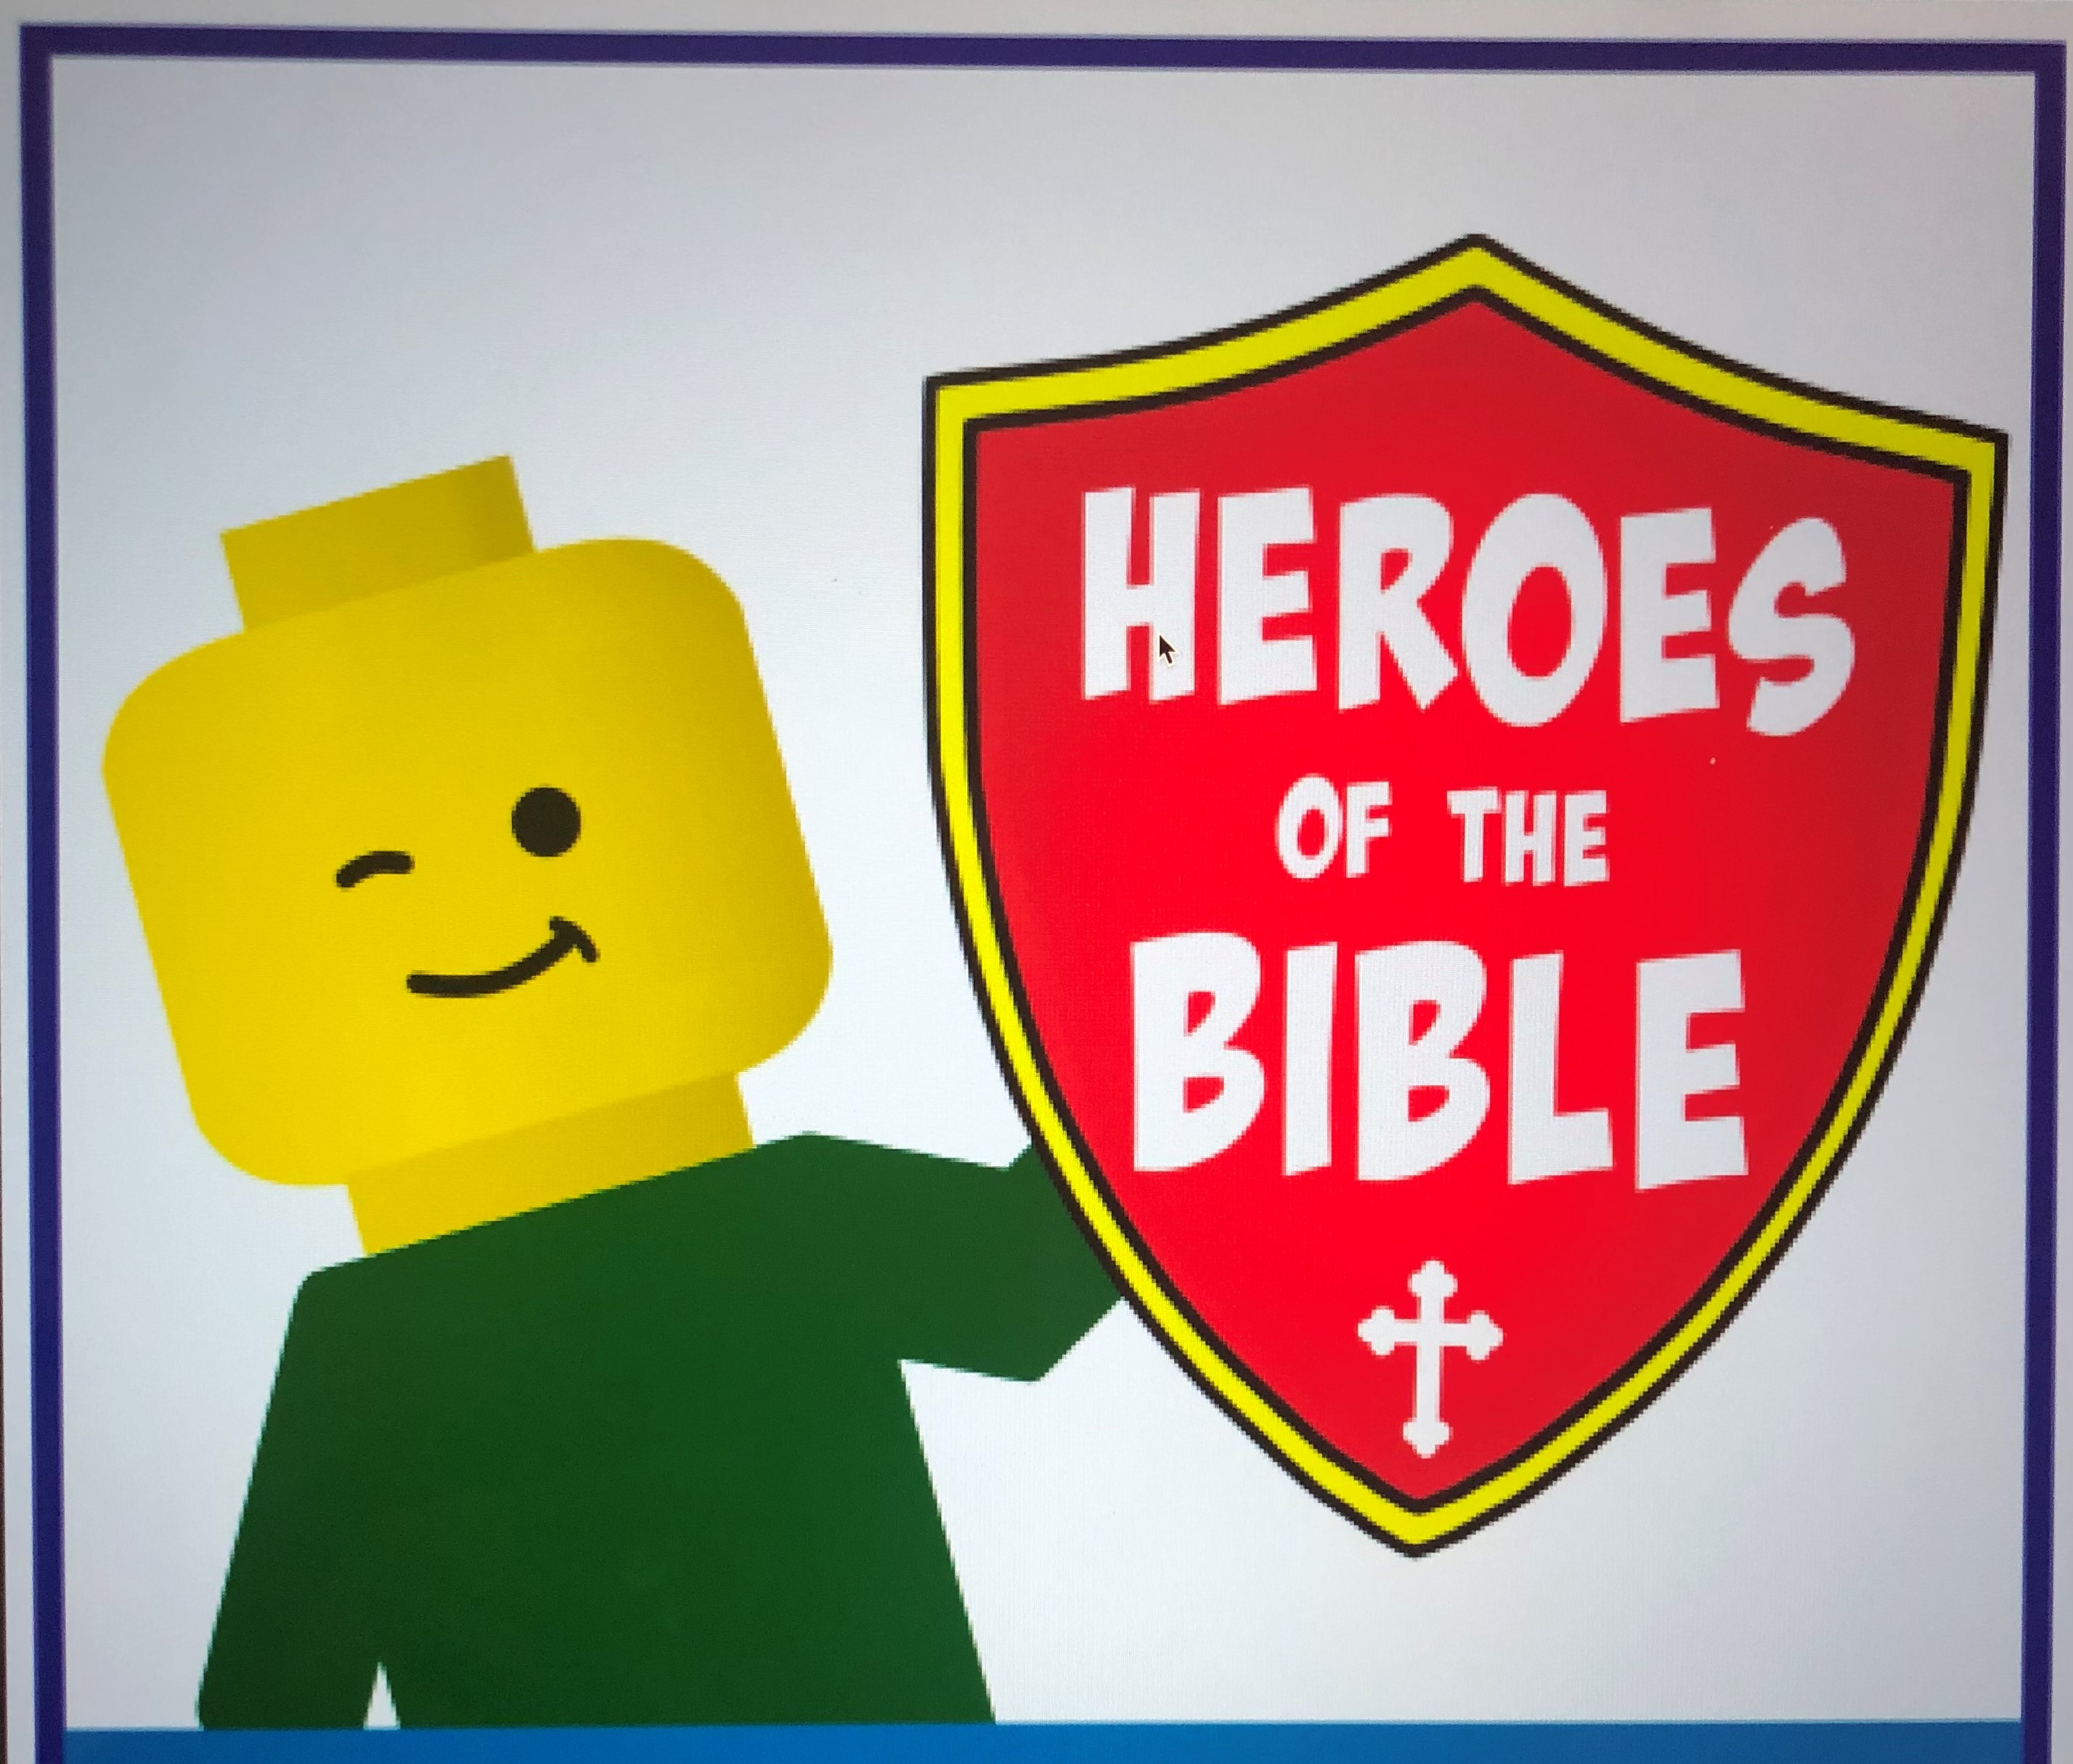 Heros of the Bible - Joseph